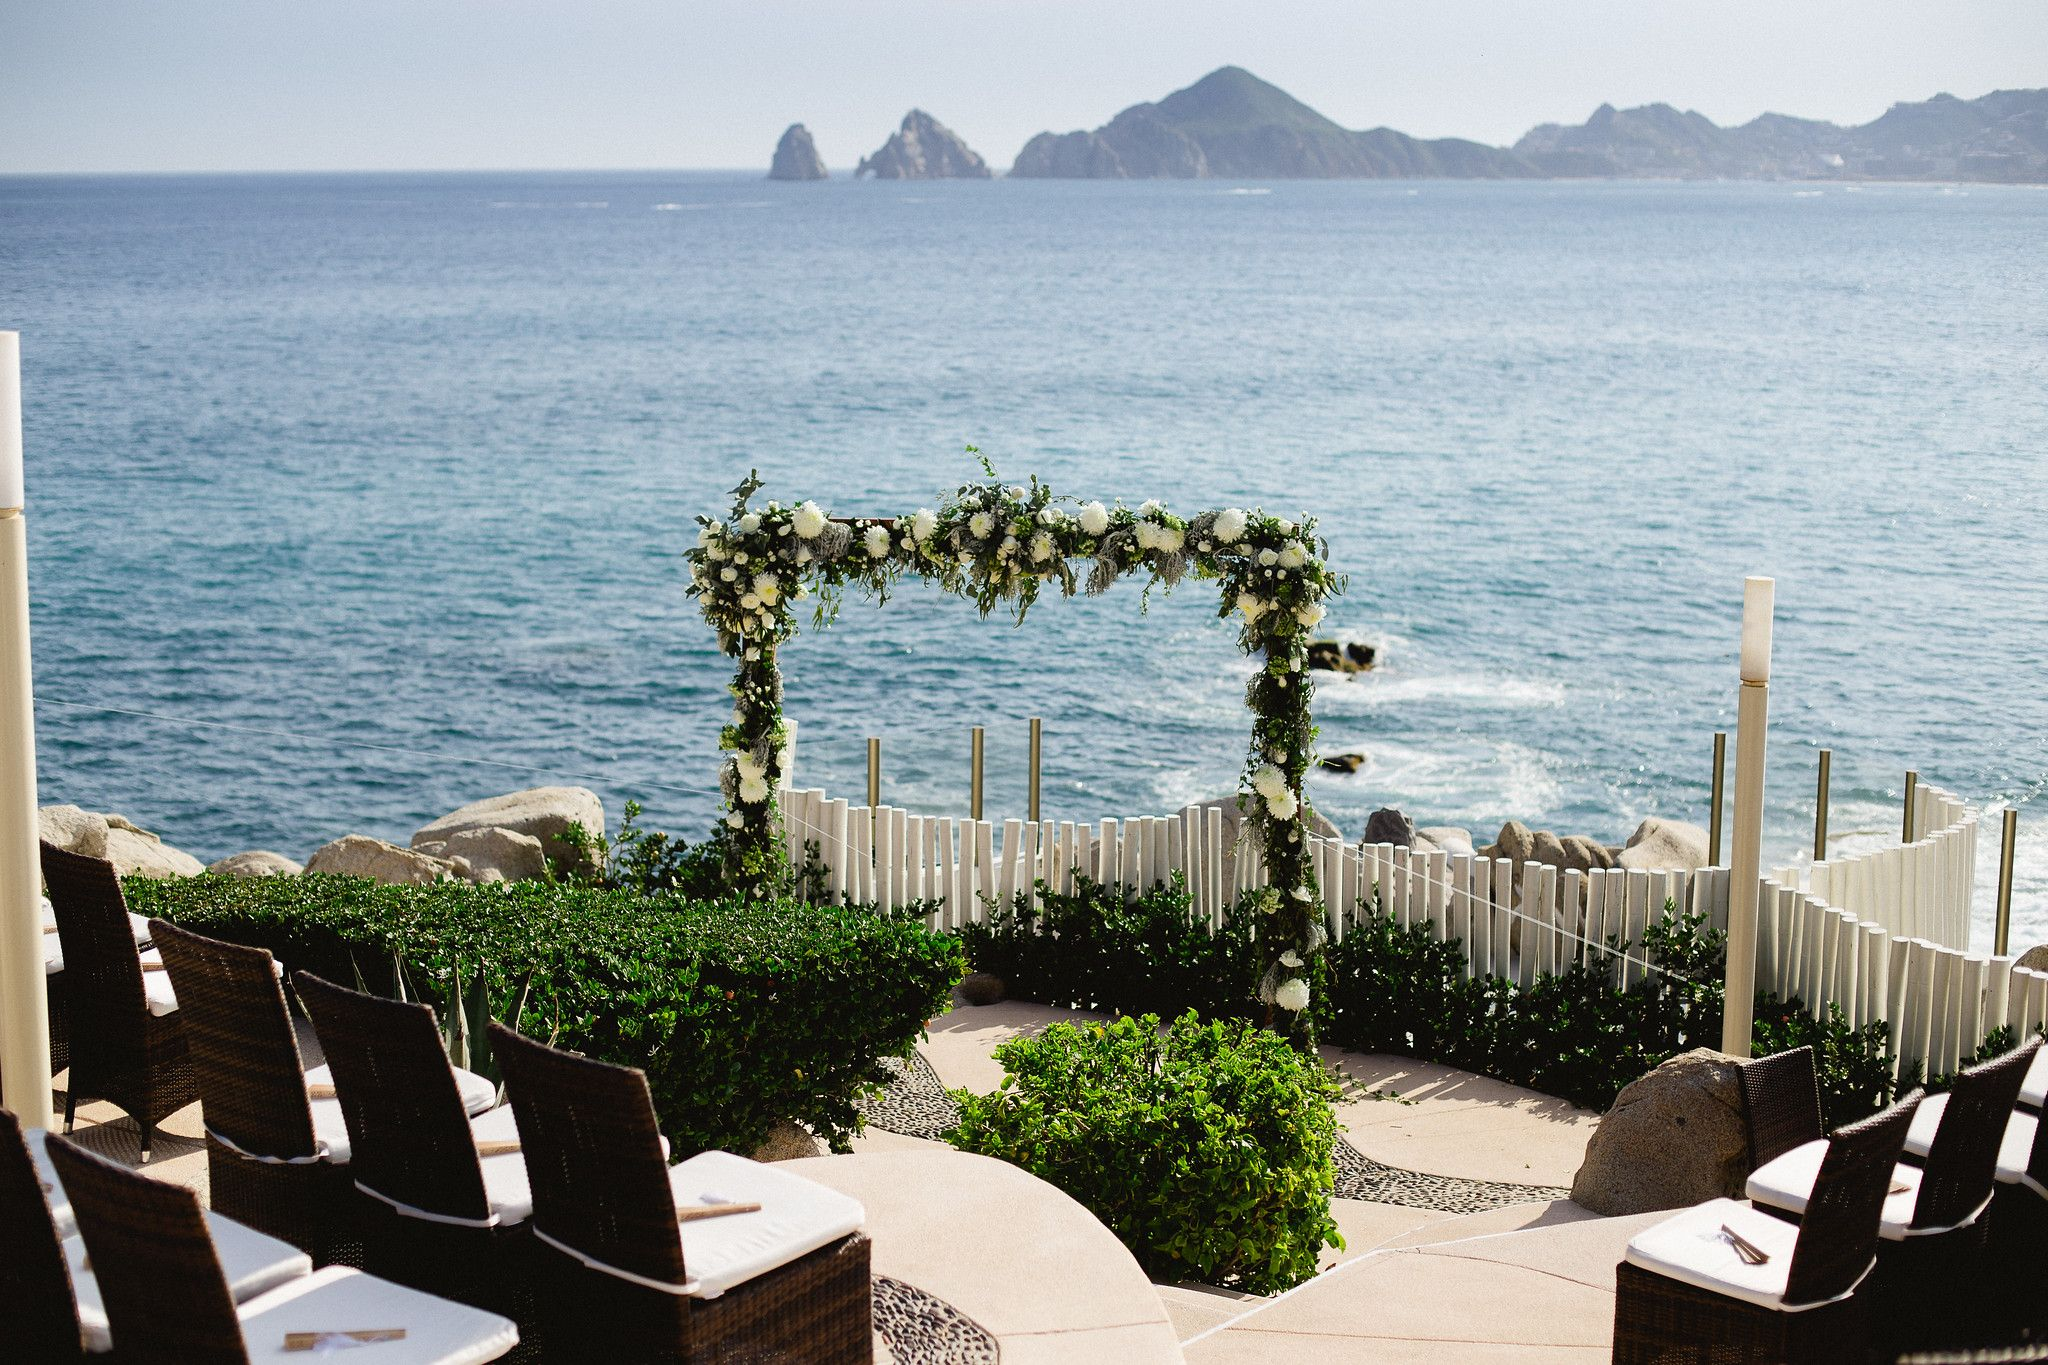 Wedding Ceremony design by Cabo Wedding Services at Sunset da Mona Lisa in Cabo San Lucas, Mexico